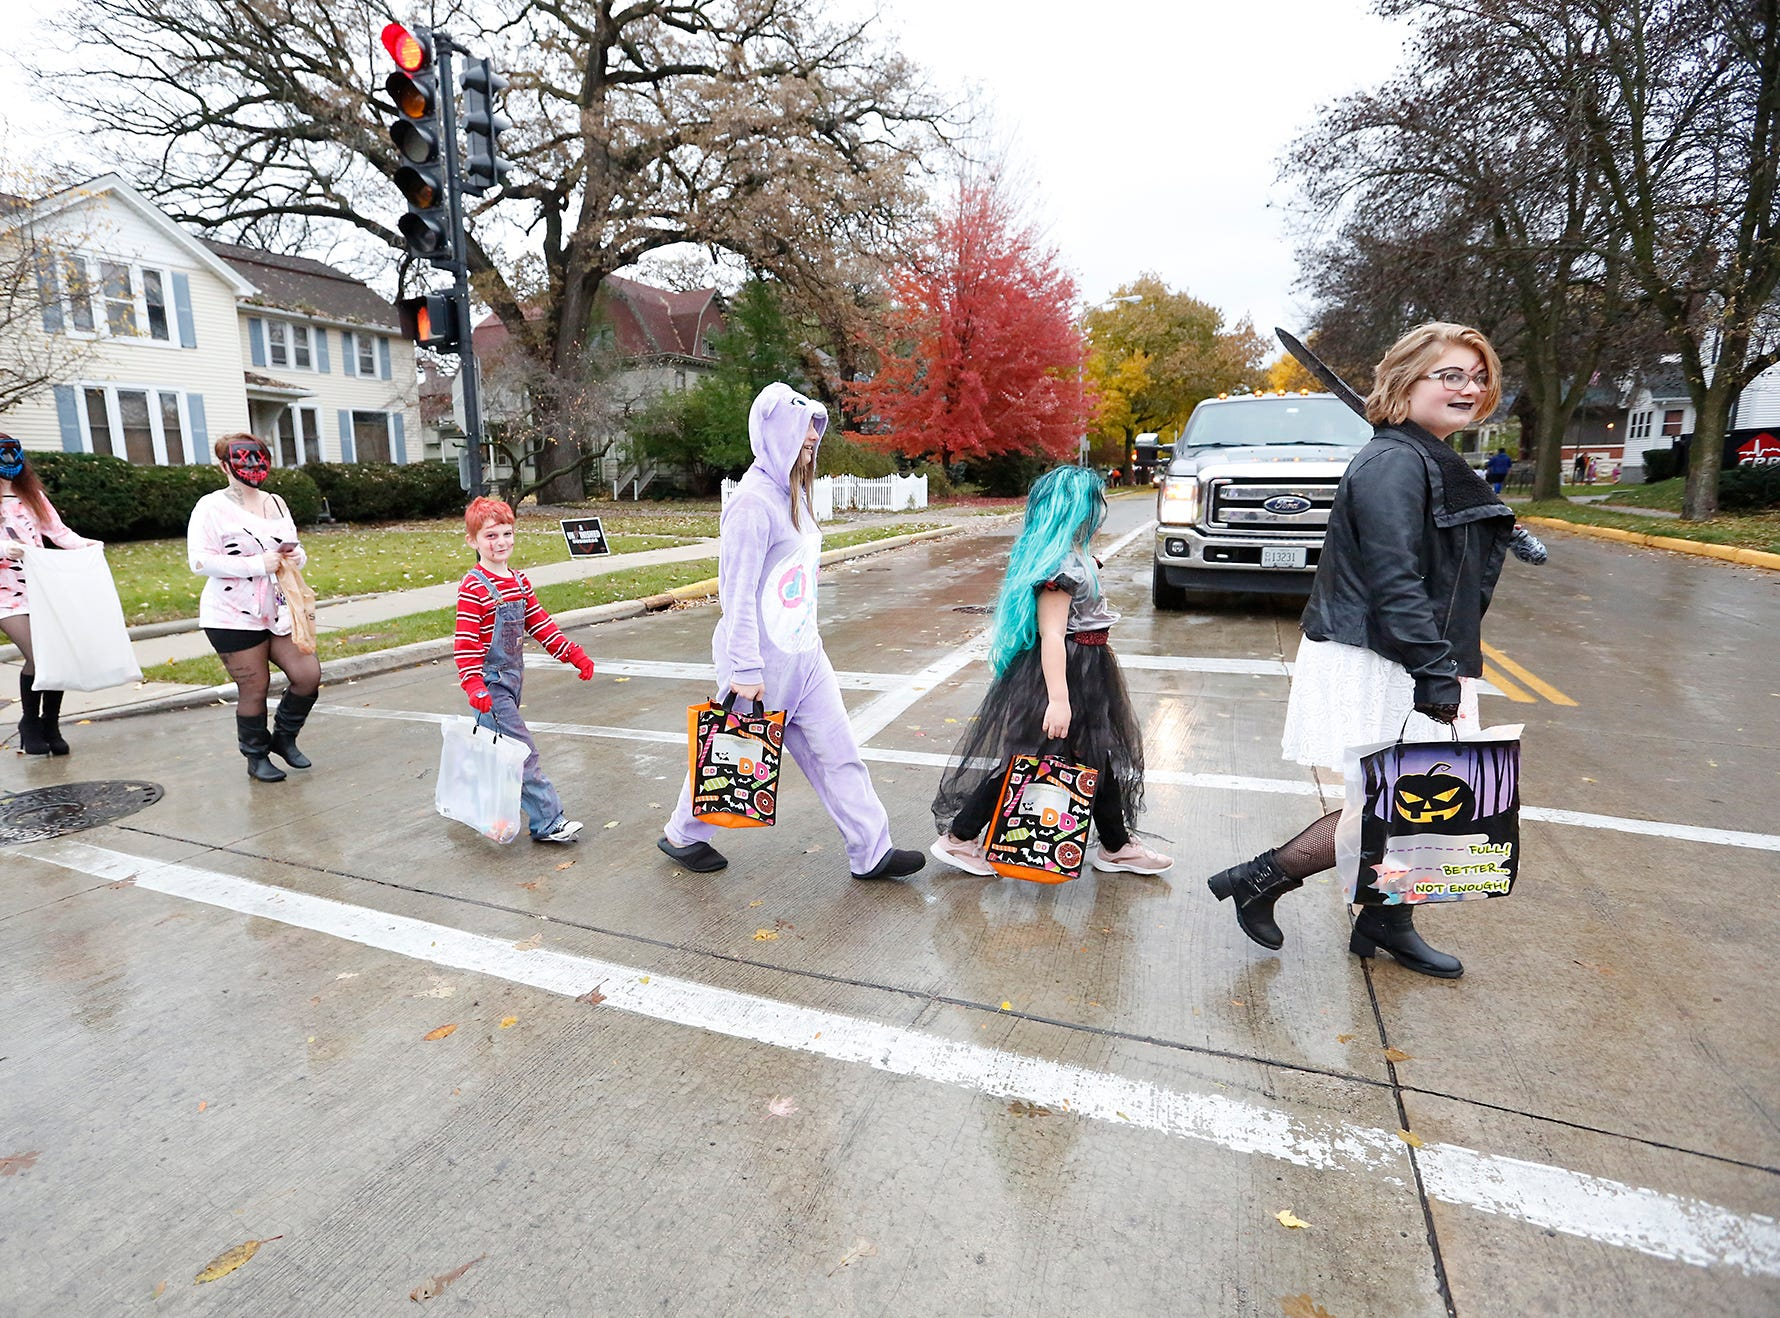 Desiree Snyder, Michelle Snow, Channing Snyder, Mekenna and Lexi Cazett and Lily Crowell of Fond du Lac walk along Park Avenue Sunday, October 28, 2018 in Fond du Lac, Wisconsin while trick or treating. Doug Raflik/USA TODAY NETWORK-Wisconsin